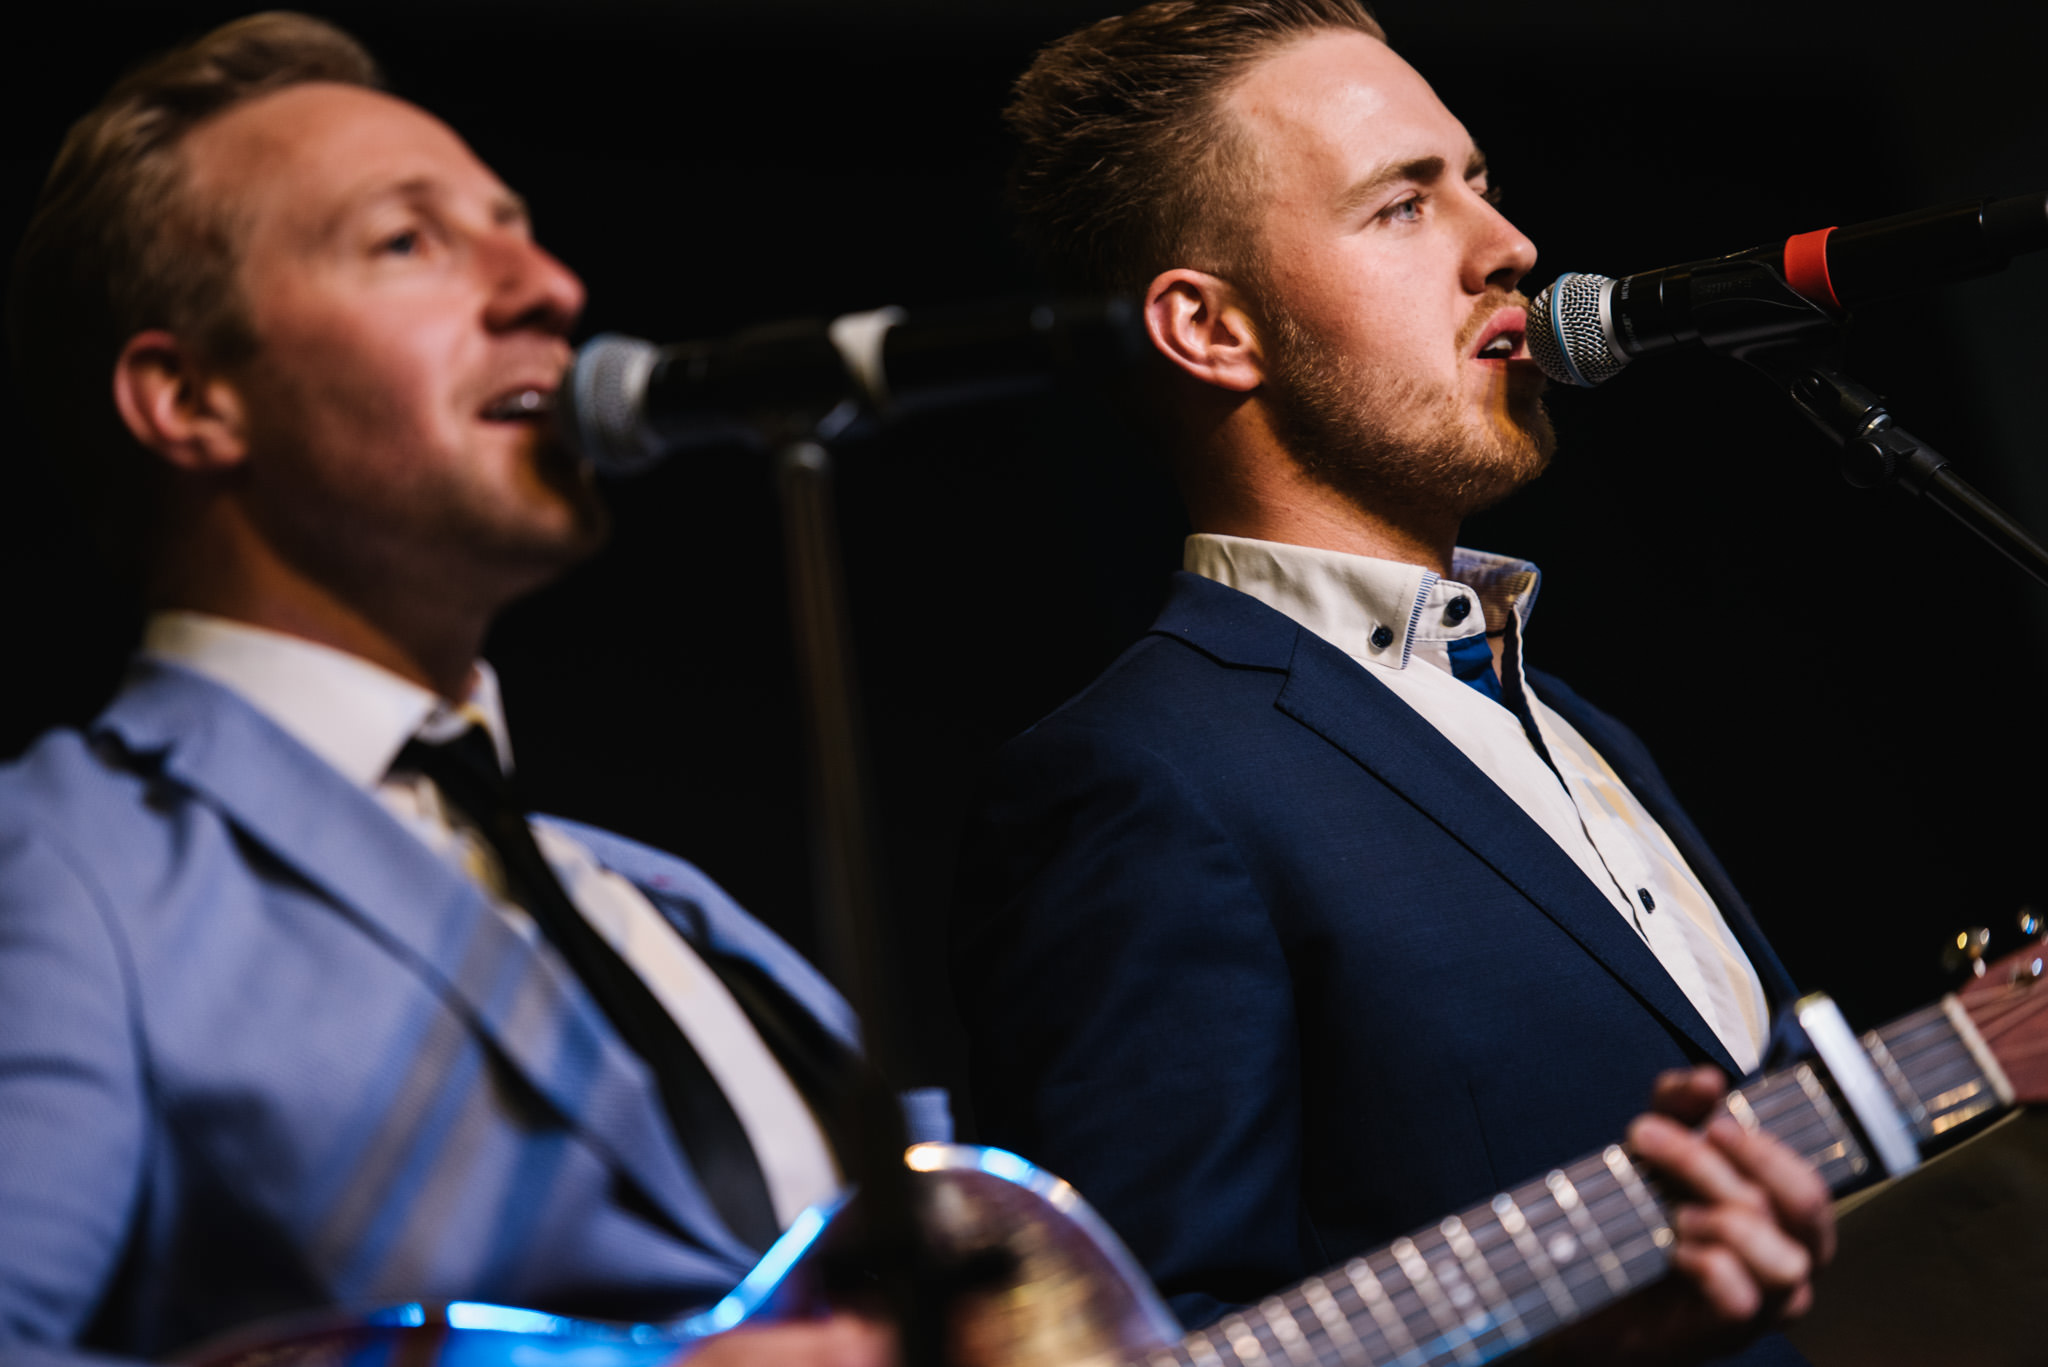 Band sings at christian wedding ceremony